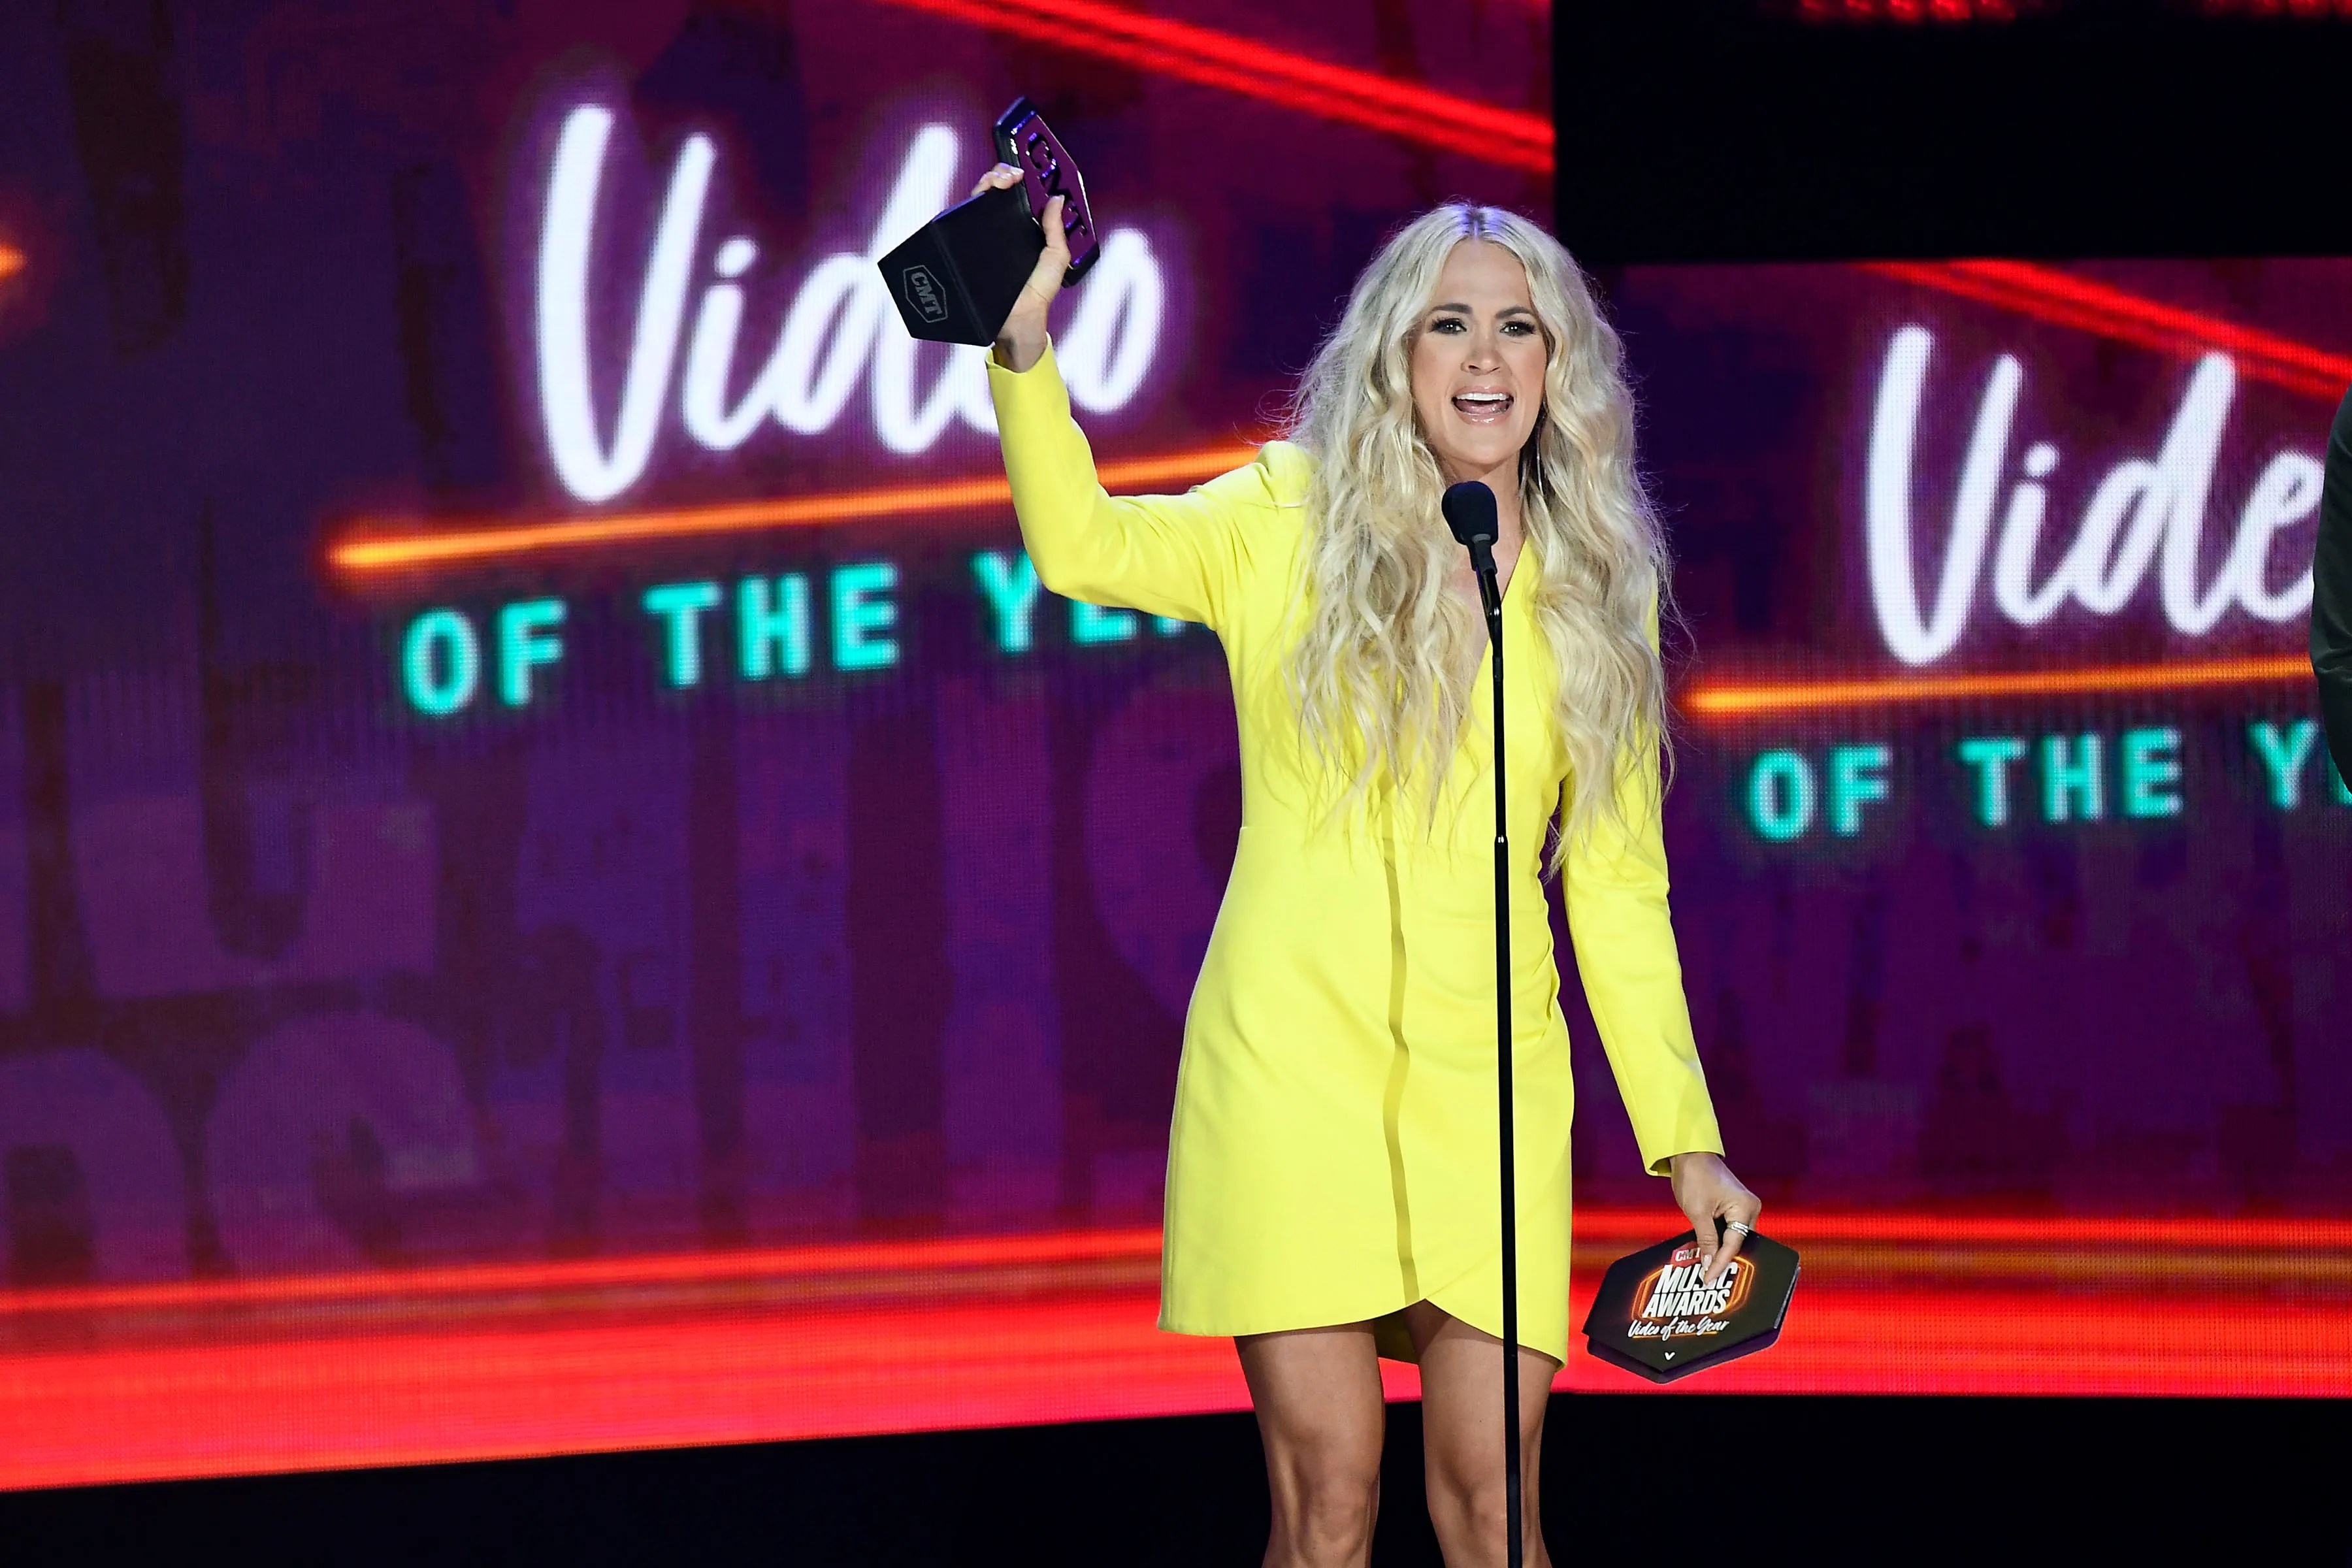 Carrie Underwood accepts the Video of the Year award at the 2021 CMT Music Awards at Bridgstone Arena in Nashville, Tenn on Wednesday, June 9, 2021.